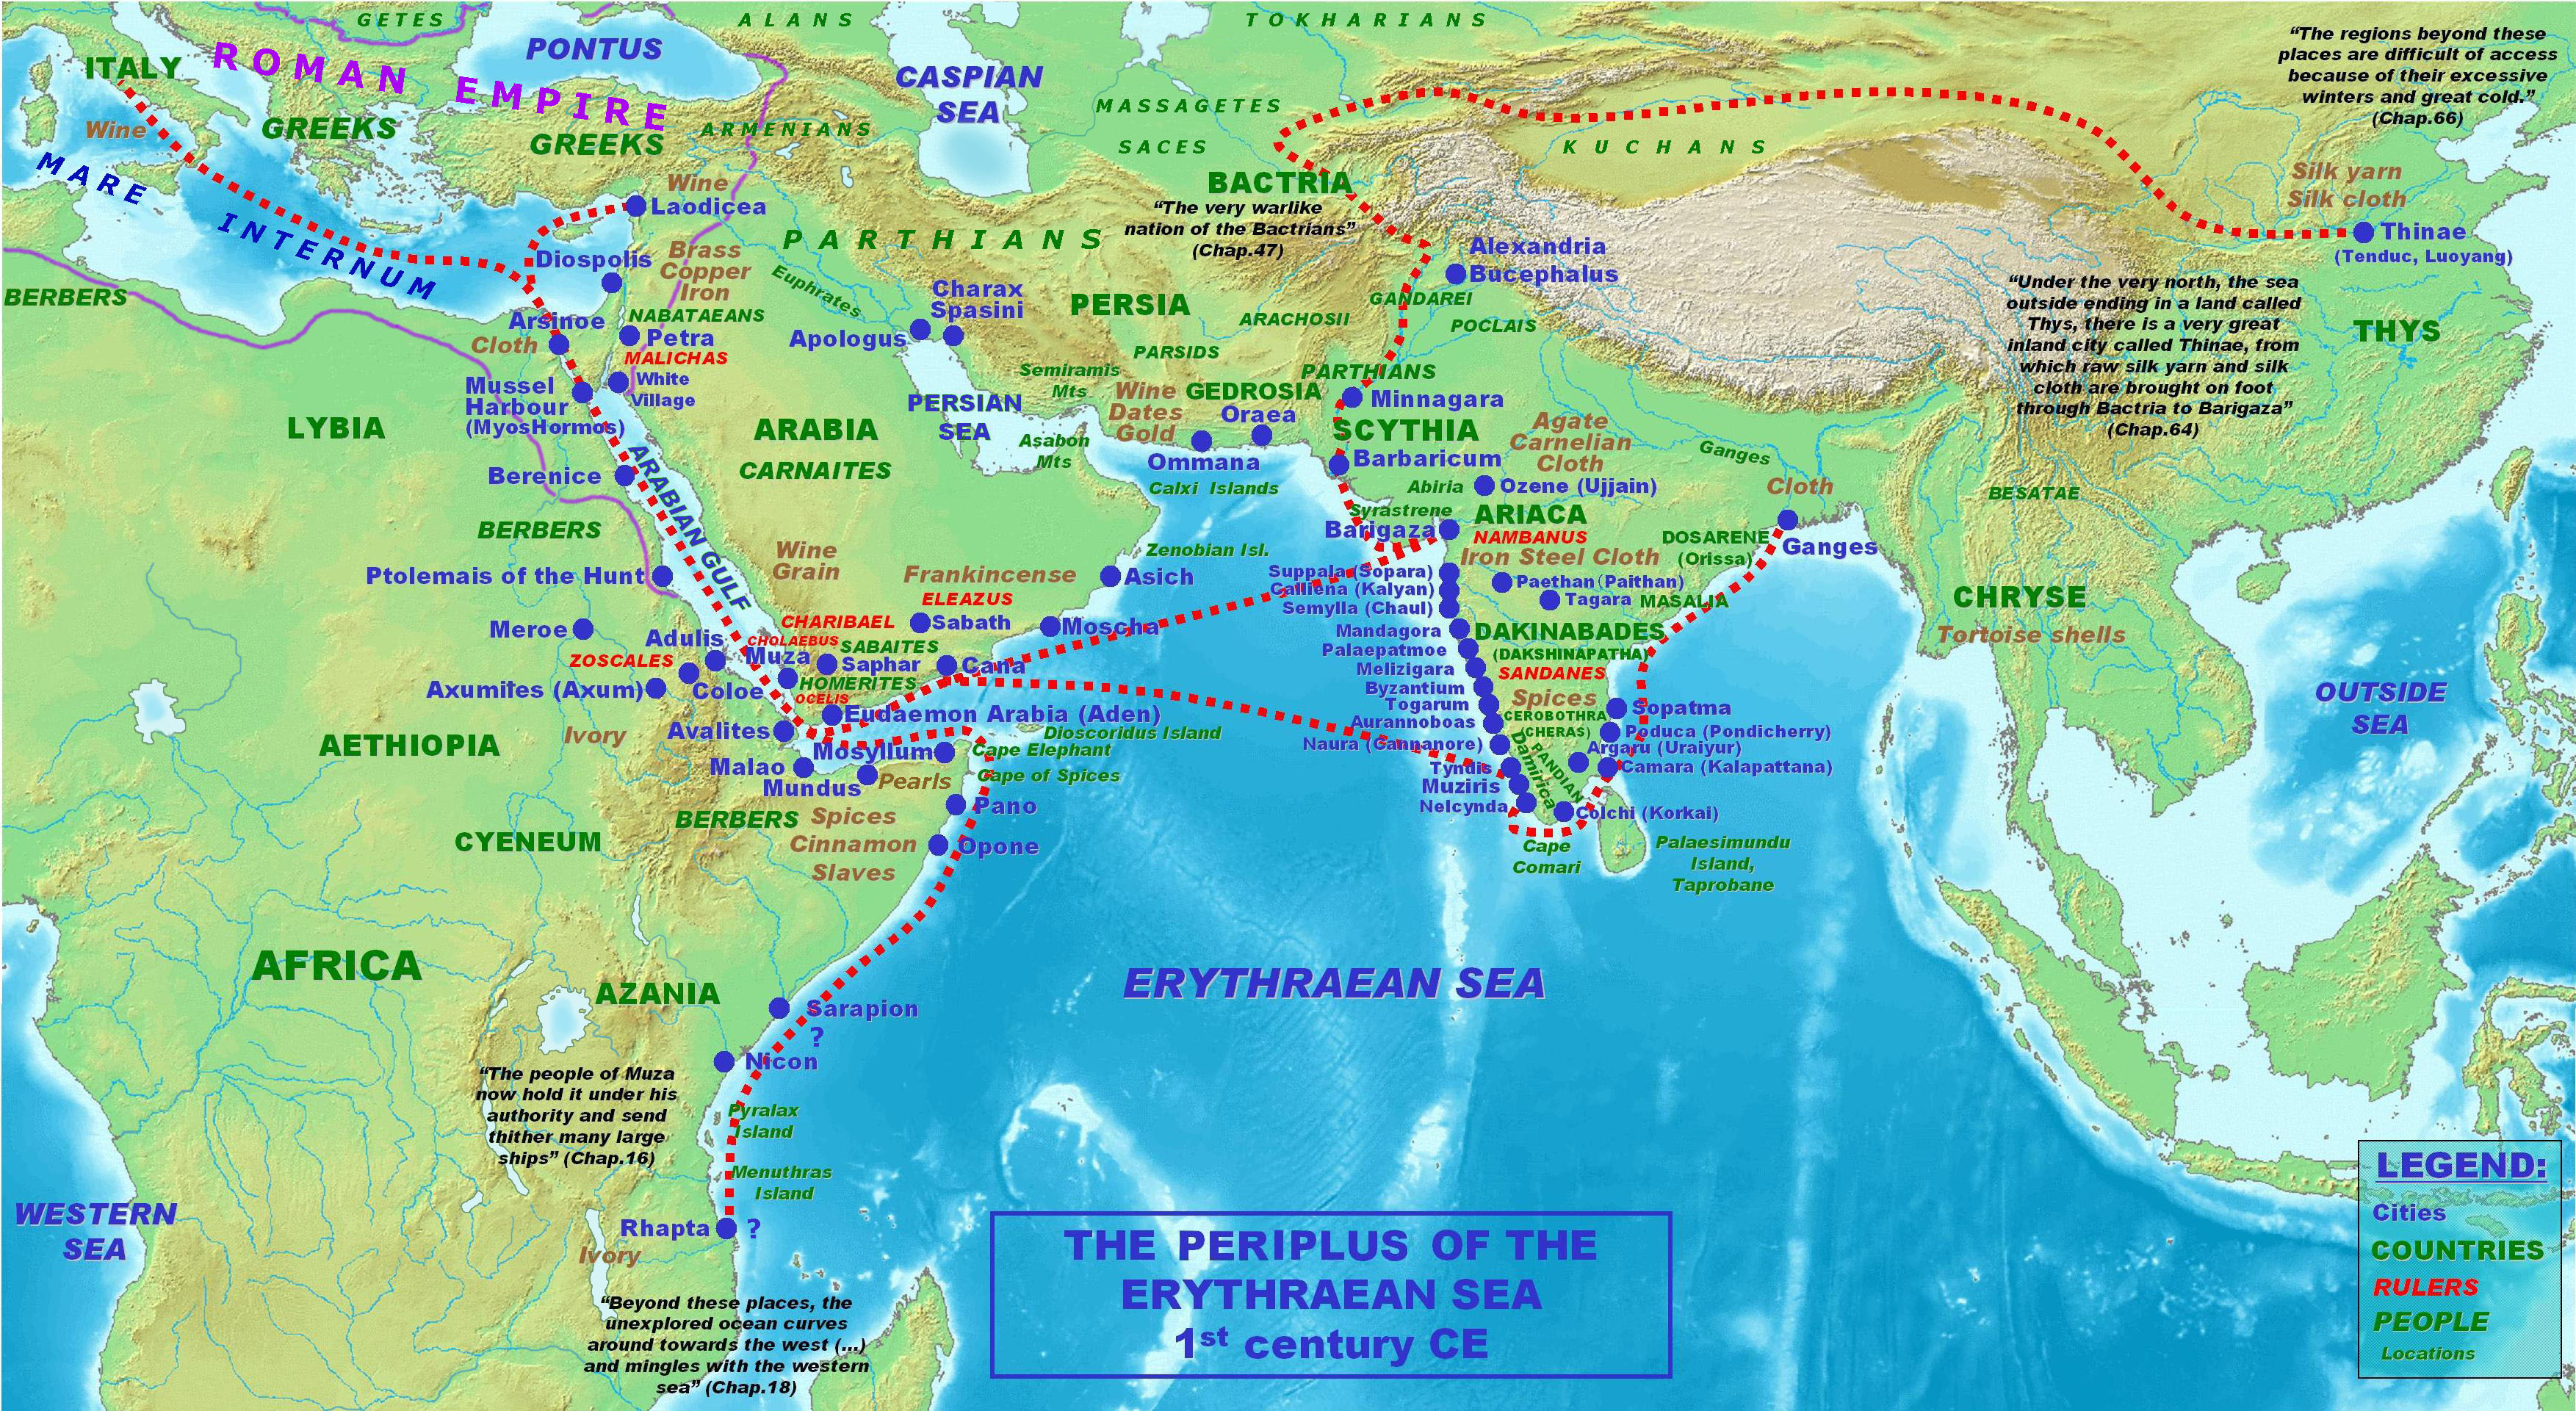 http://upload.wikimedia.org/wikipedia/commons/a/a5/Map_of_the_Periplus_of_the_Erythraean_Sea.jpg